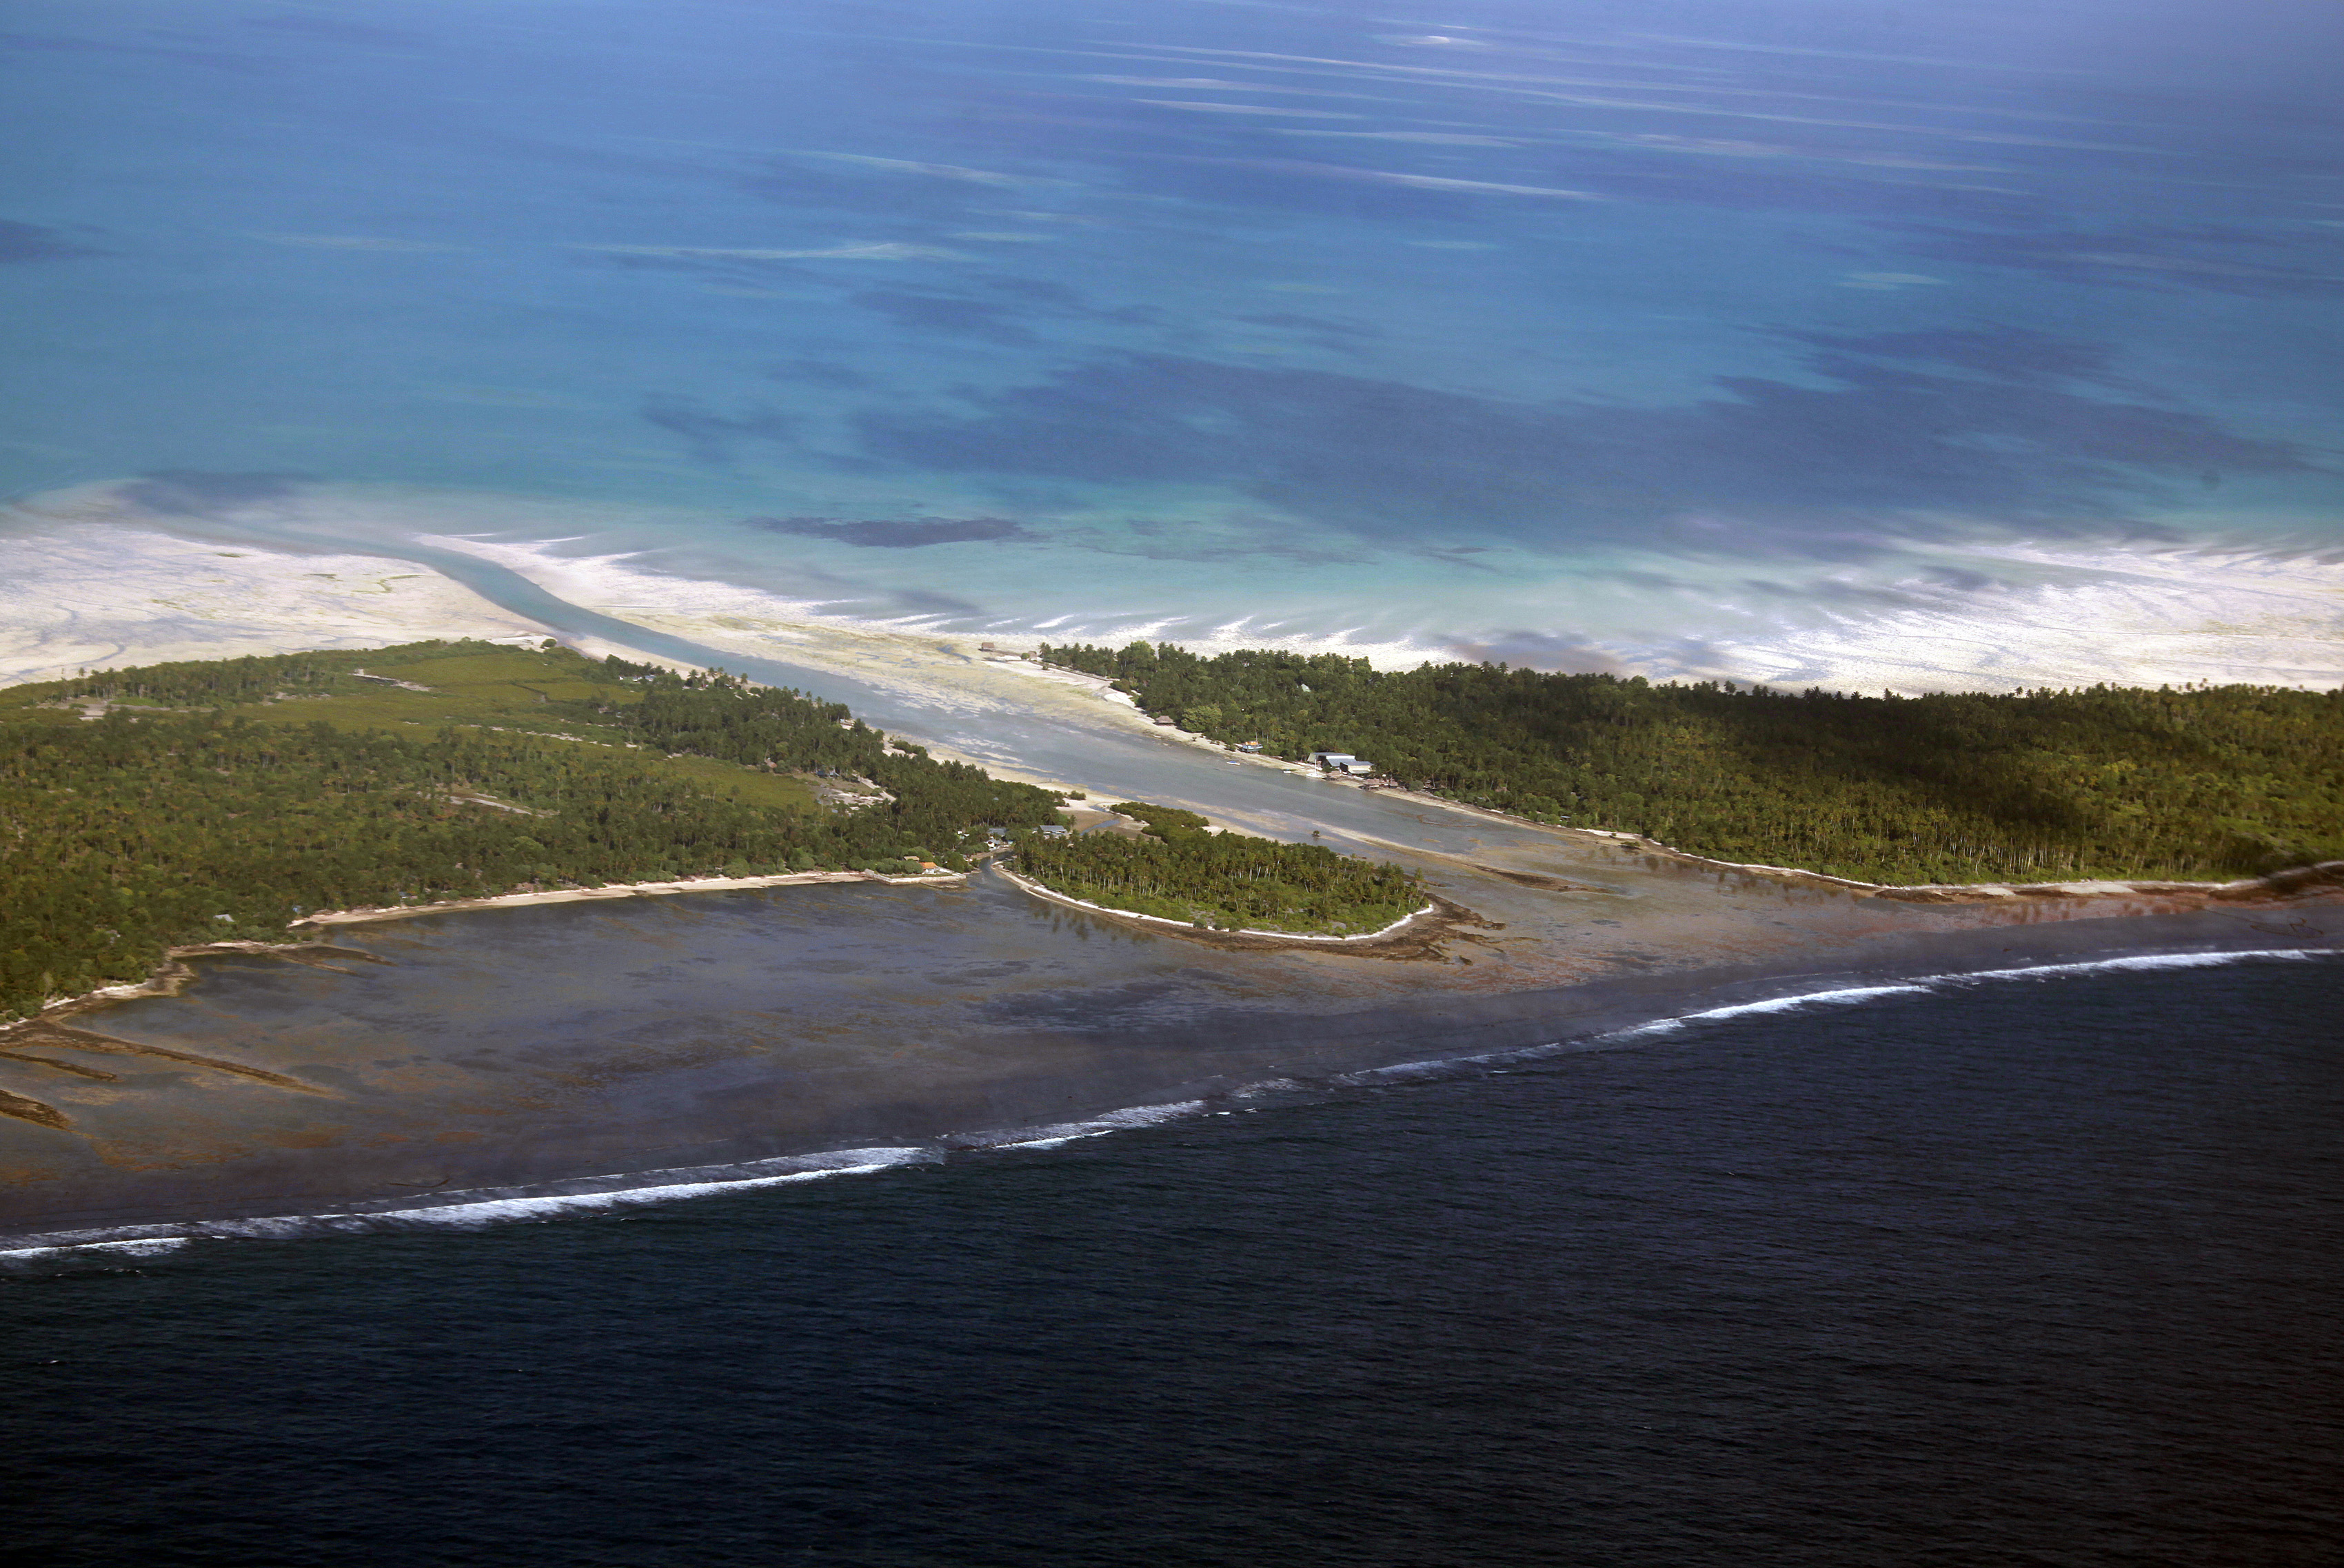 A channel runs between small areas of land on North Tarawa located in the central Pacific island nation of Kiribati